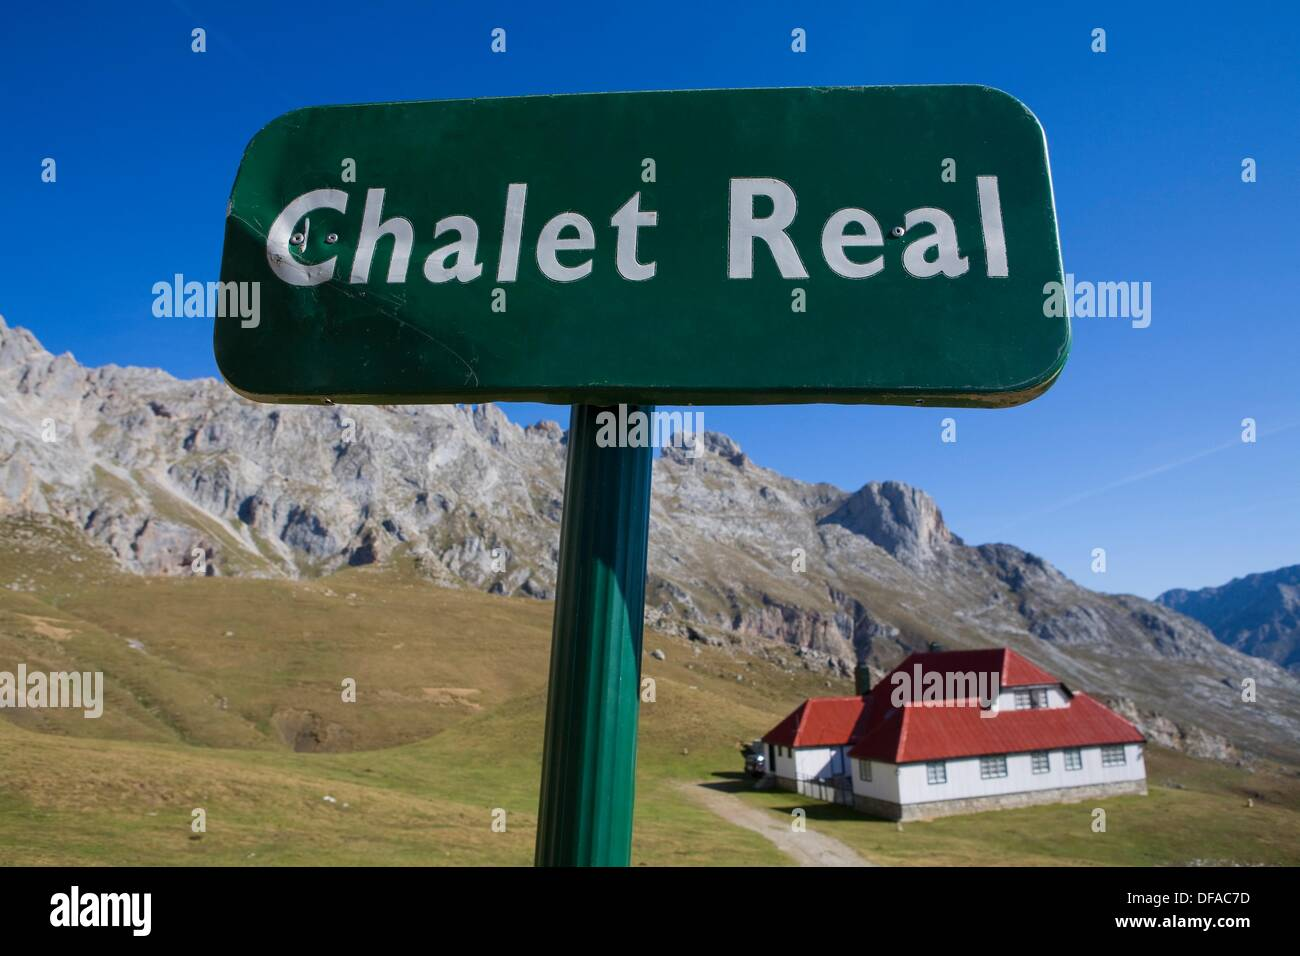 Signal or post with information in the Urrieles massif, abaut Chalet Real in the Picos de Europa National Park, Cantabria, Spain - Stock Image